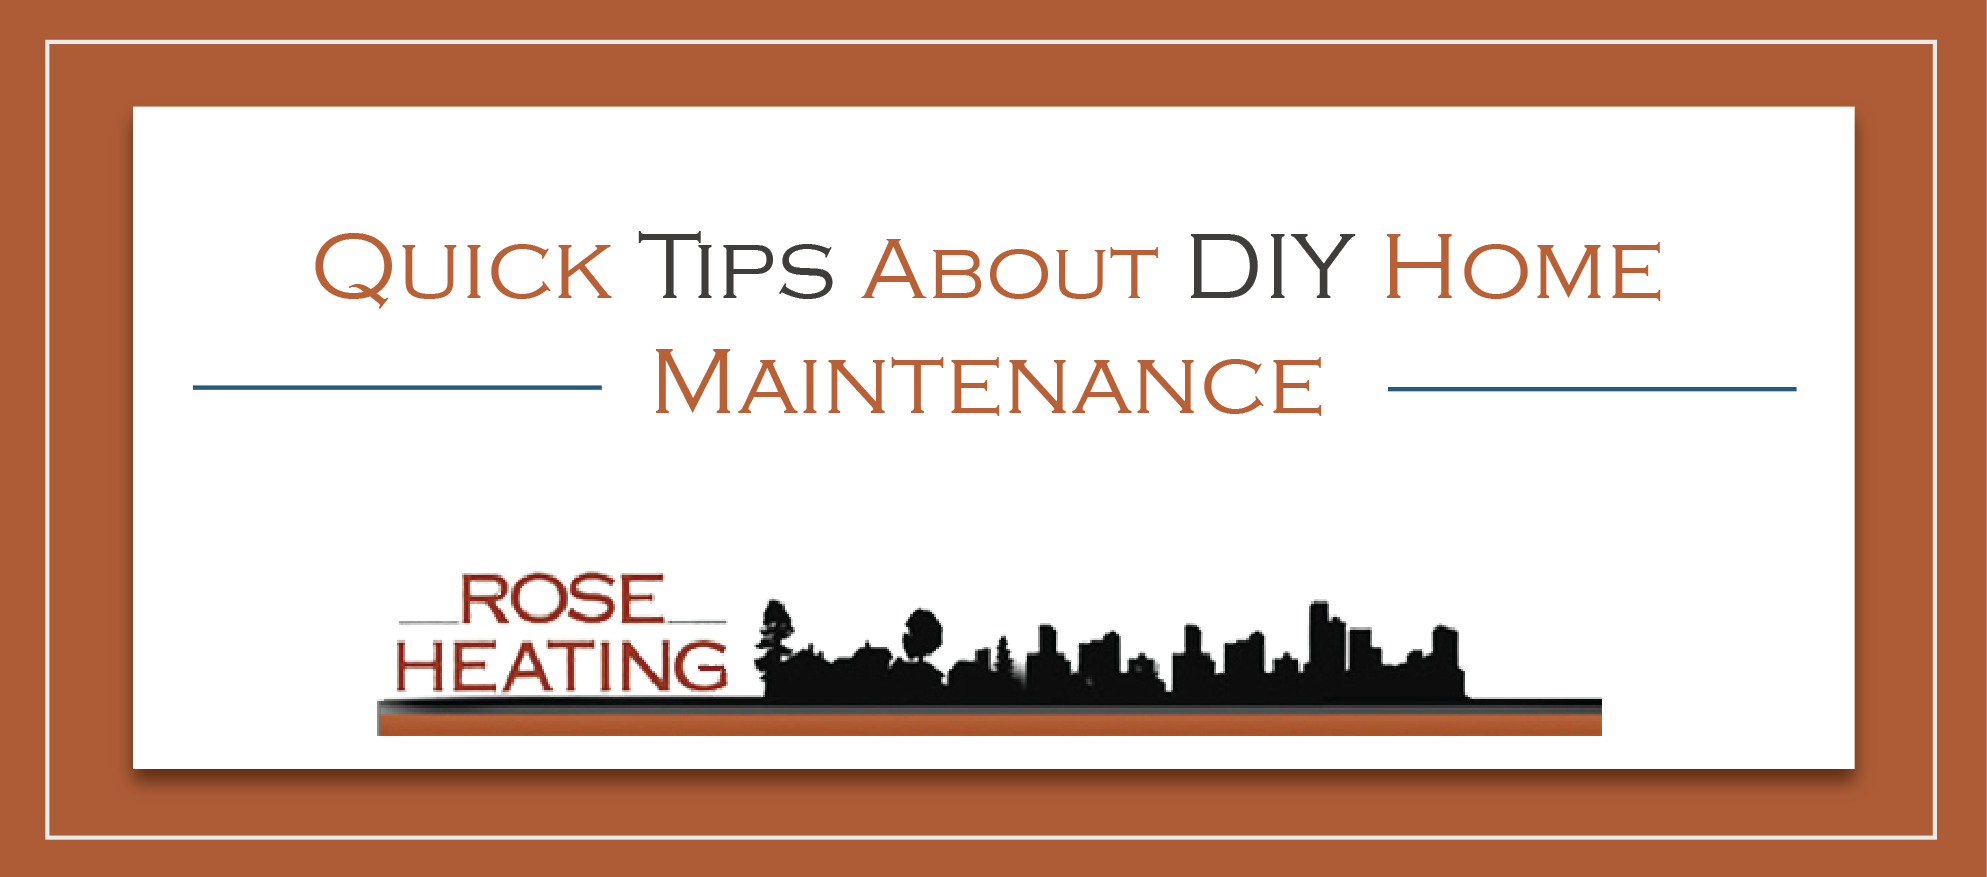 home-maintenance-tips